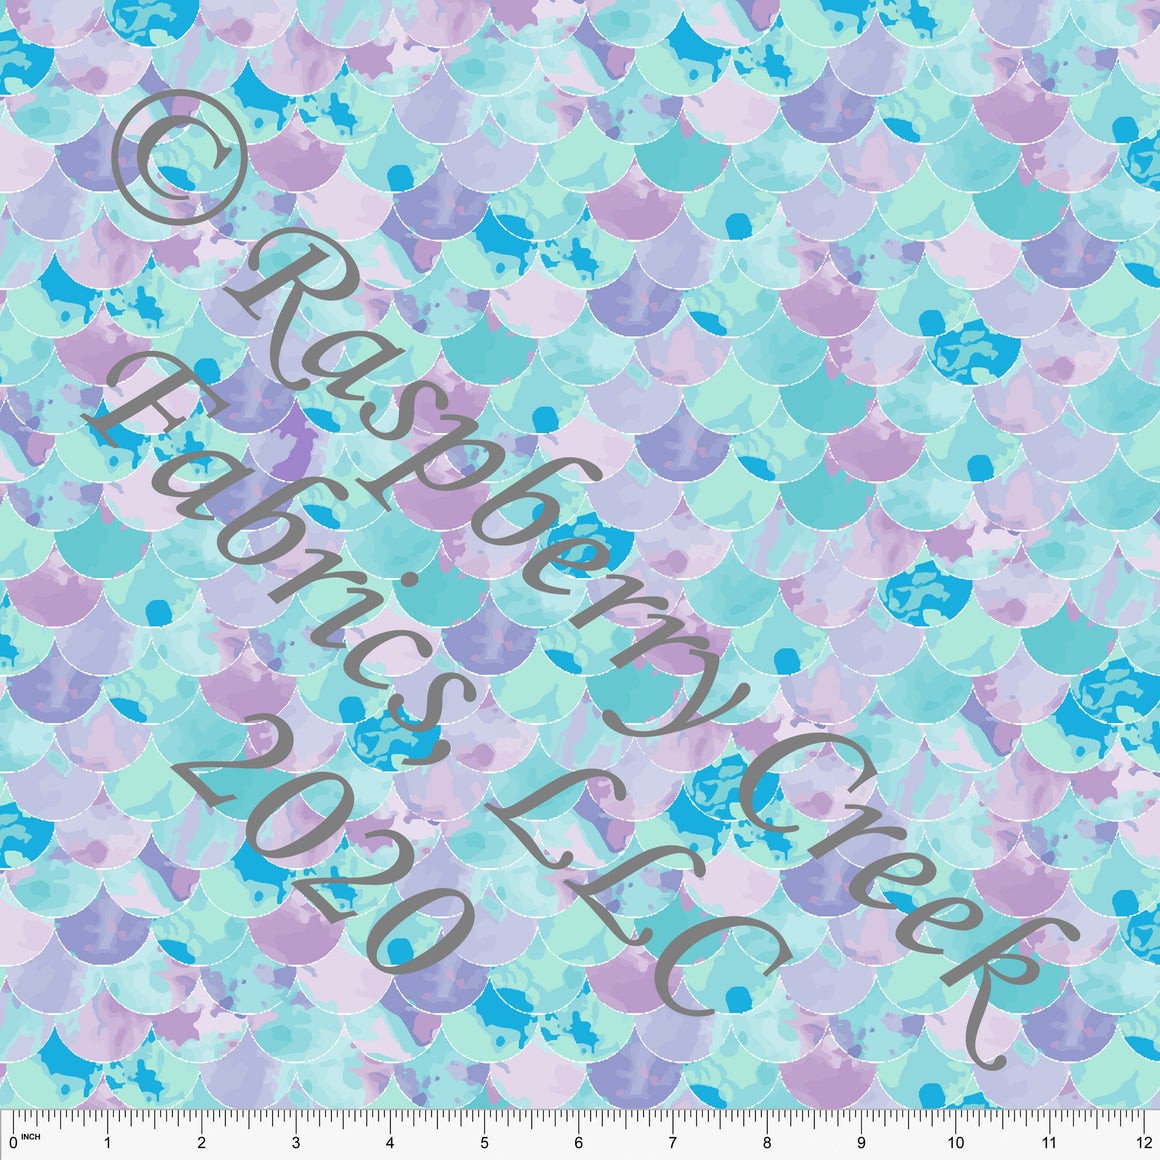 Lilac Blue and Aqua Mermaid Scale Print 4 Way Stretch MATTE SWIM Knit Fabric, By Elise Peterson for Club Fabrics - Raspberry Creek Fabrics